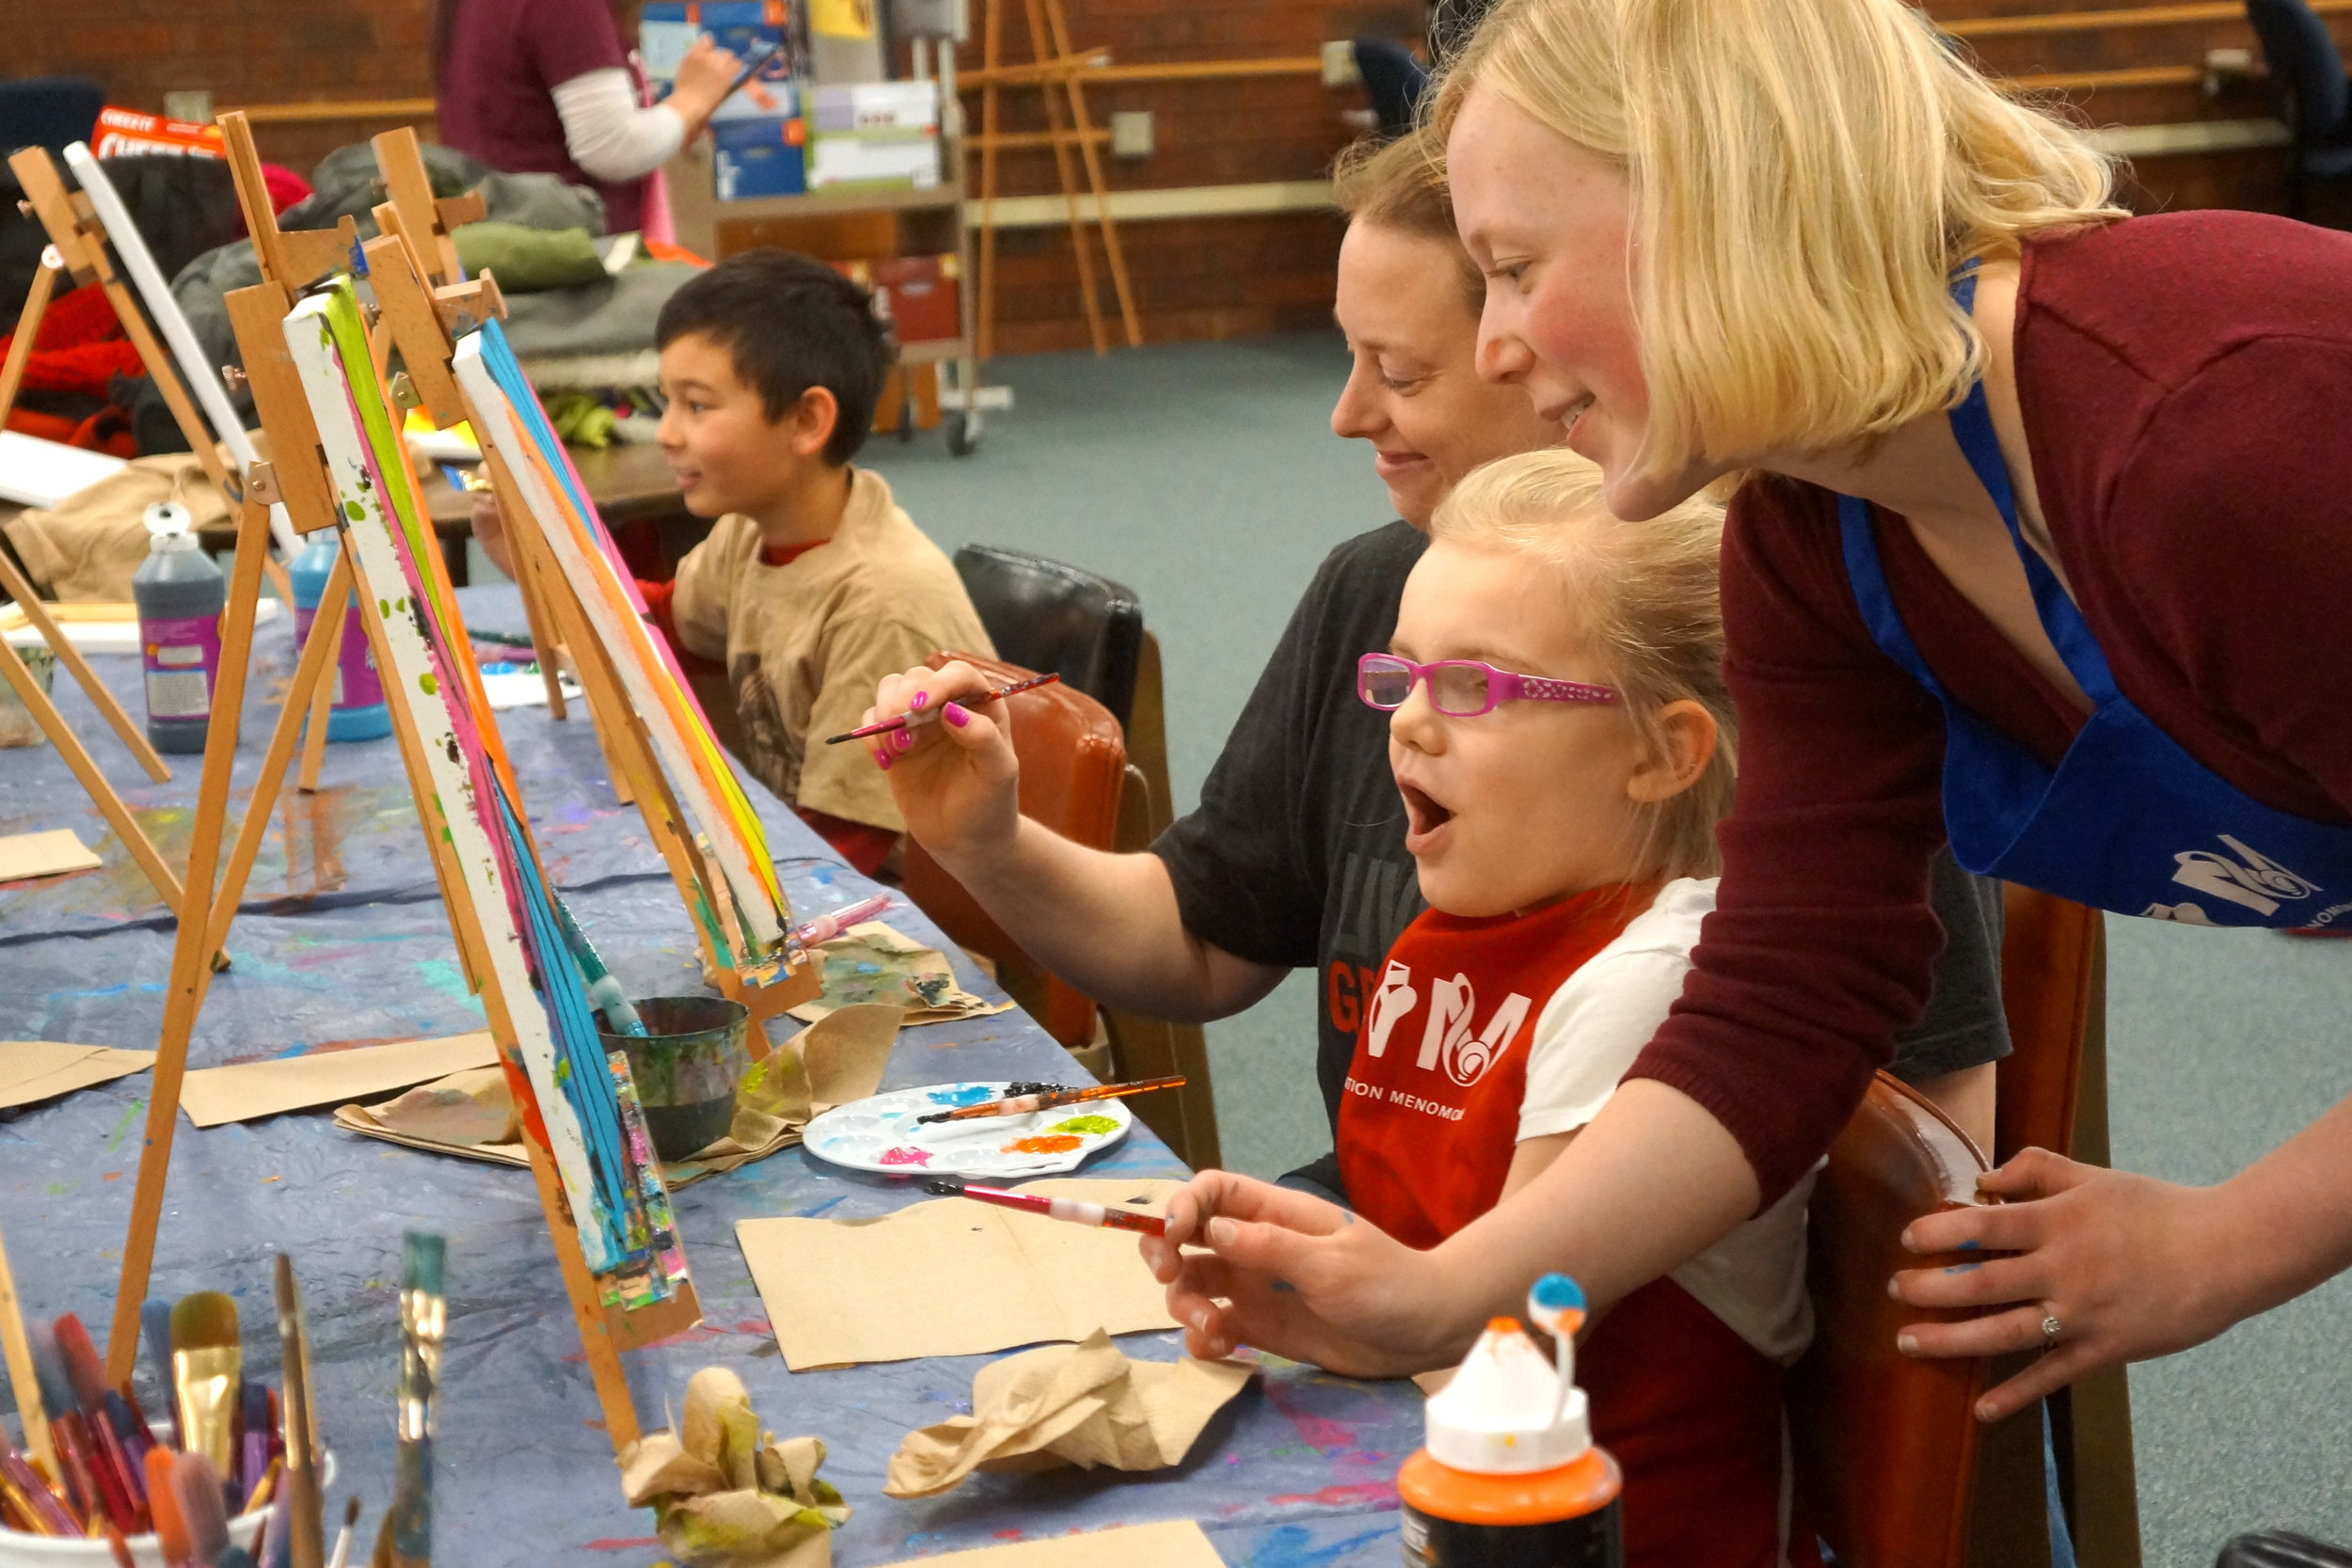 LAURA PRESLEY , UW-STOUT ART EDUCATION INTERNSHIPS: Canvas Creations (2 sections Sat./Sun.), Family painting classes, UW-Stout library